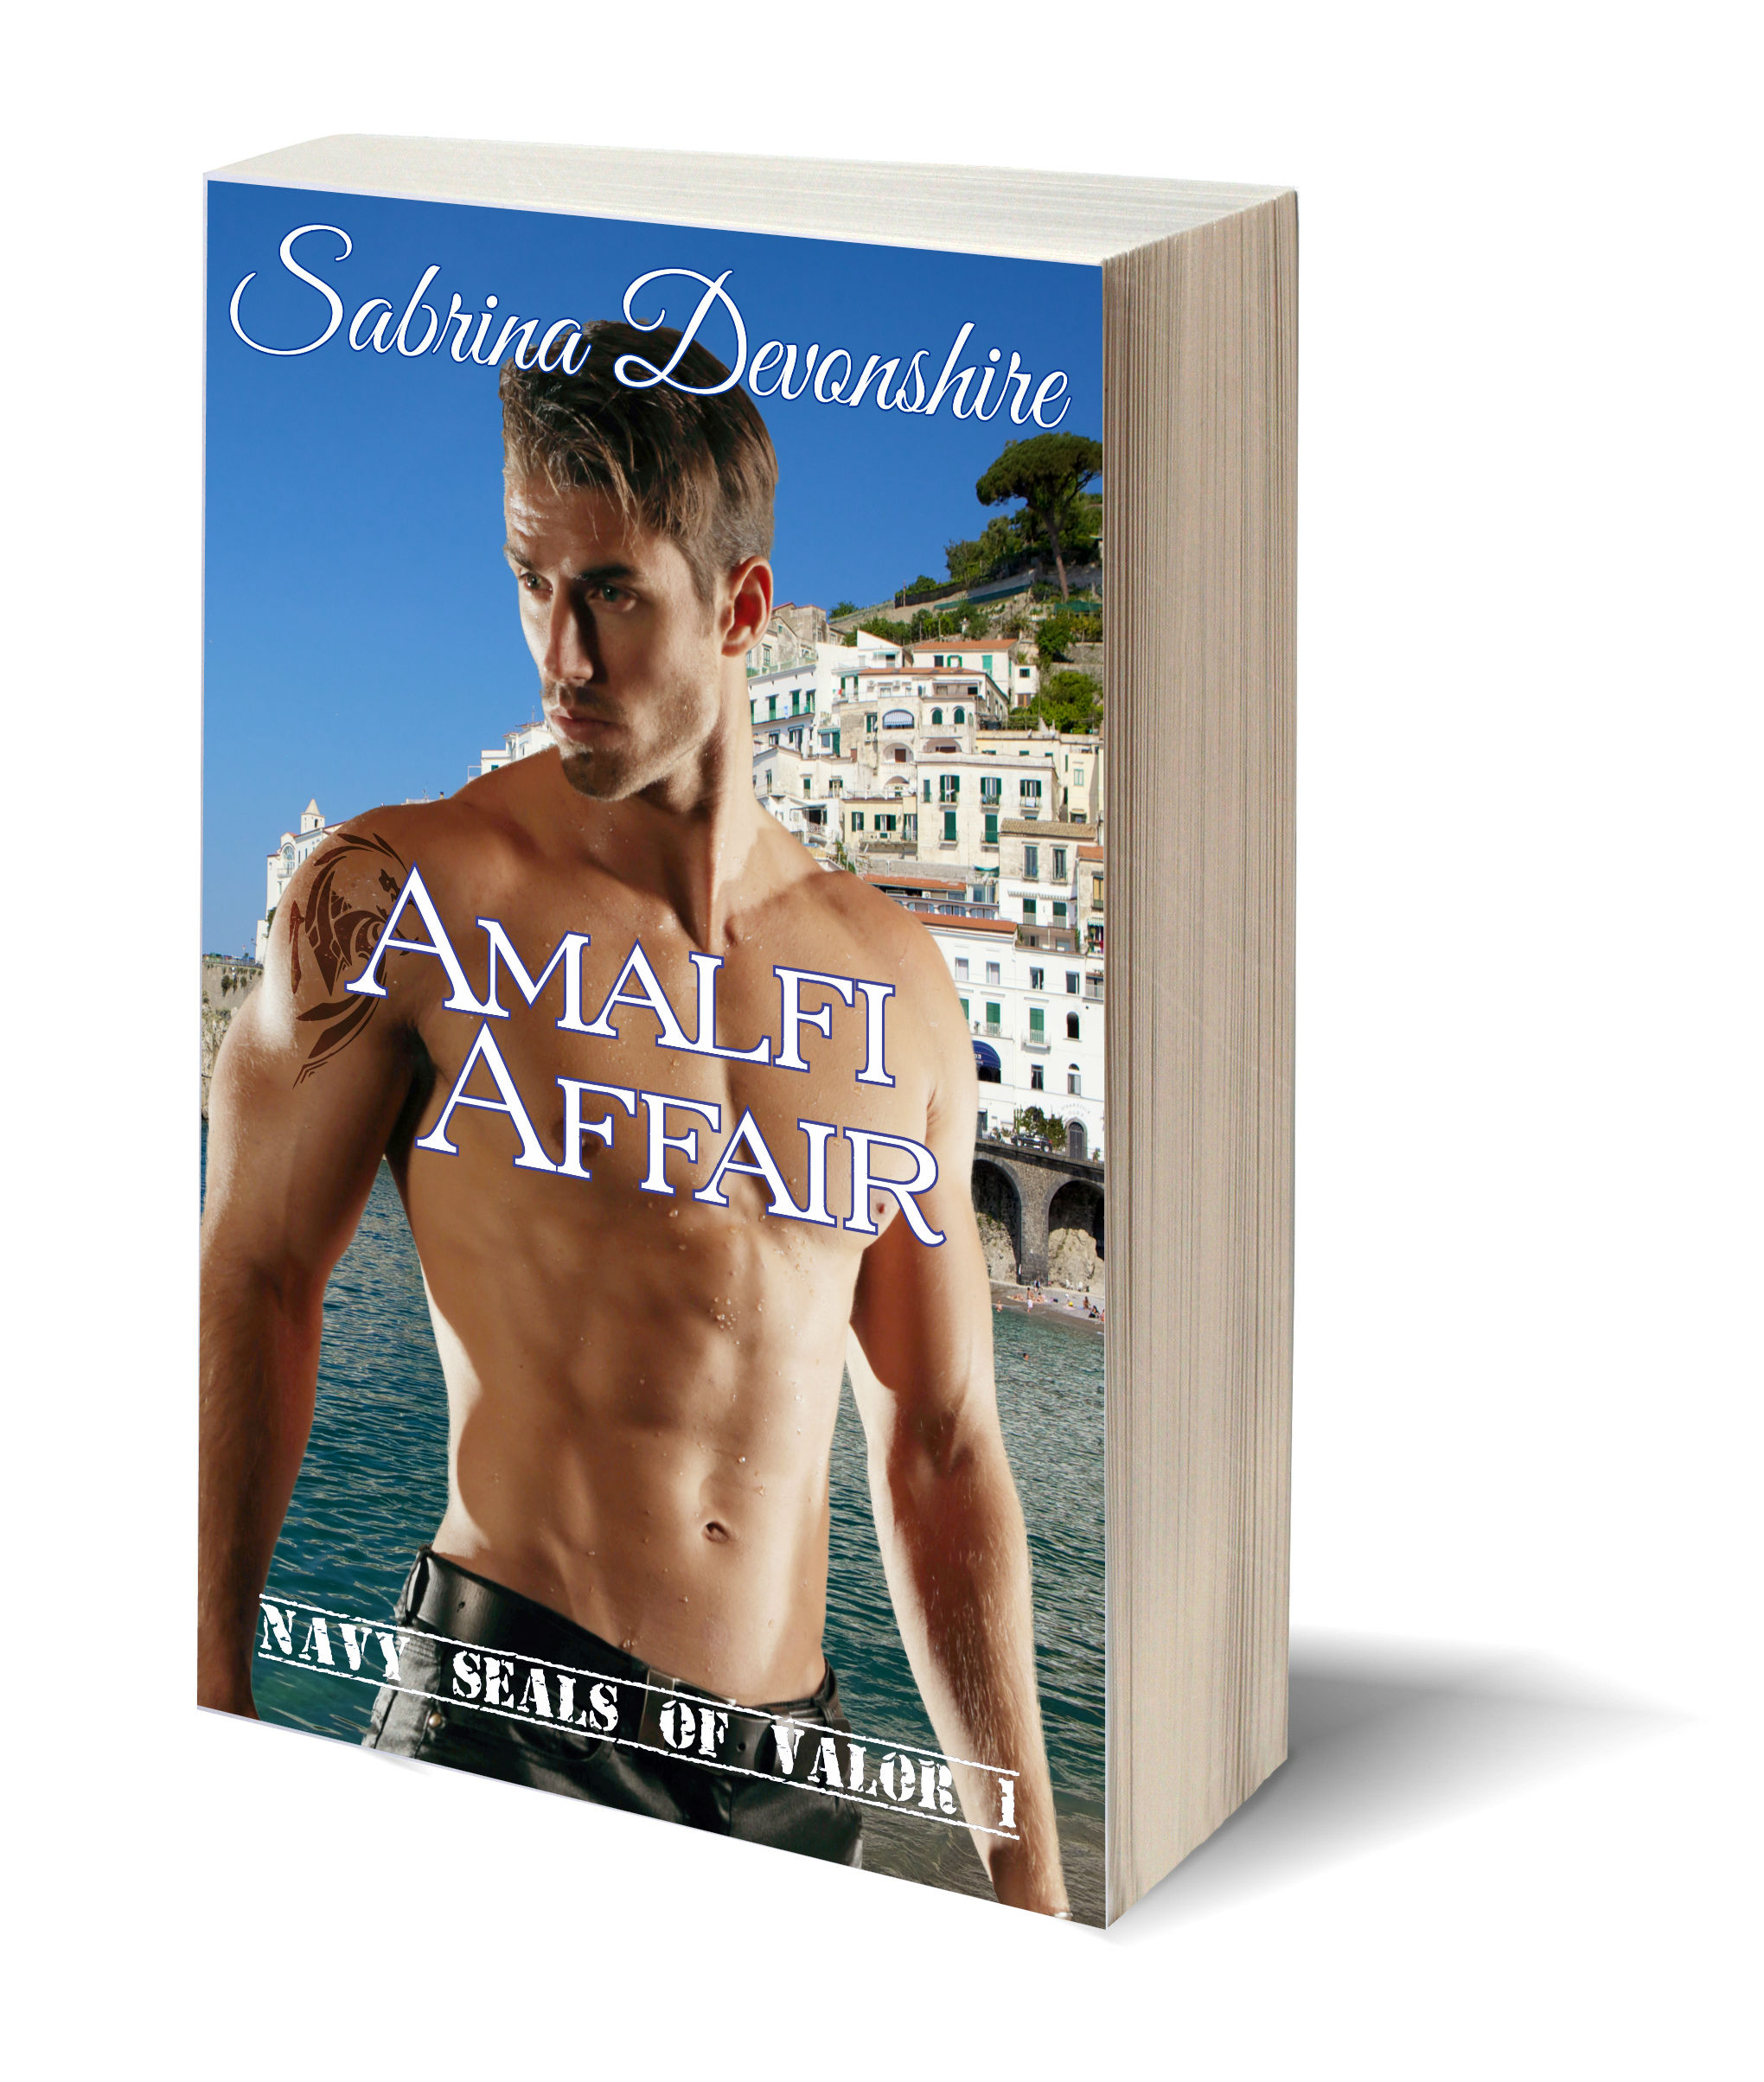 Amalfi affair 3D-Book-Template.jpg